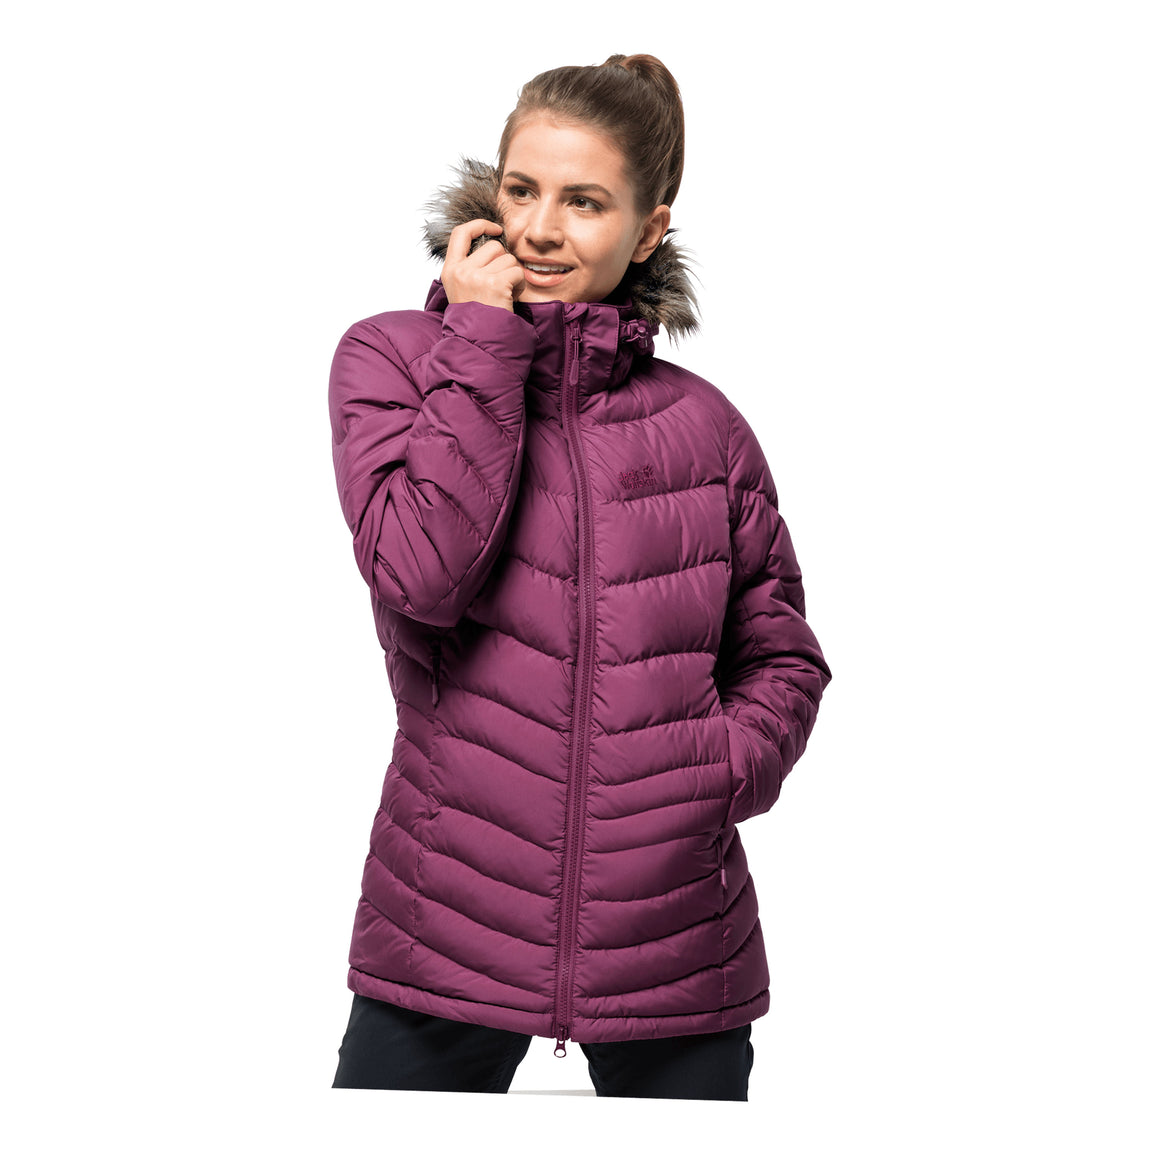 Selenium Bay Down Jacket for Women in Violet Quartz